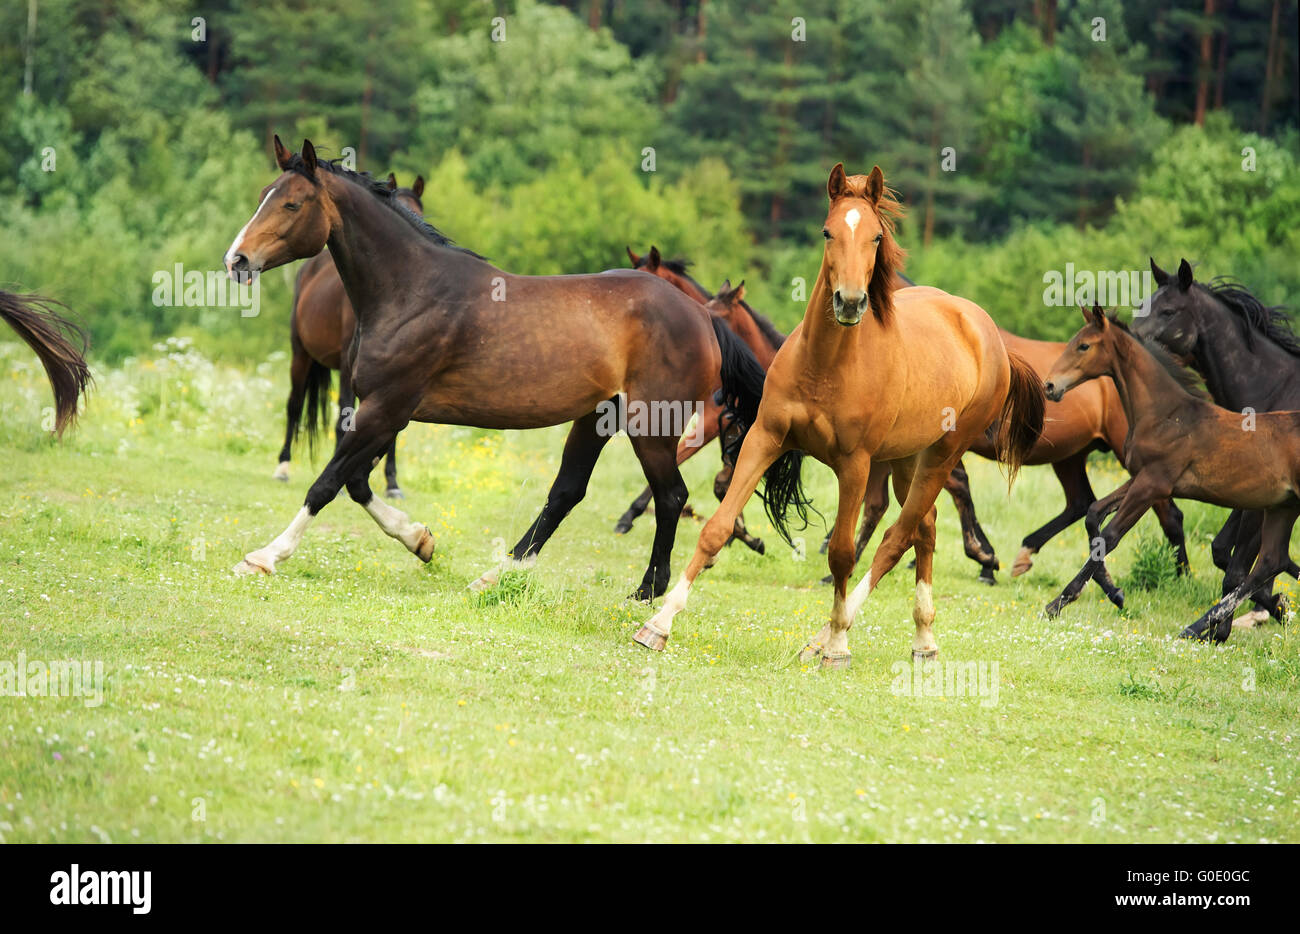 Running  sportive breed mares  at freedom - Stock Image